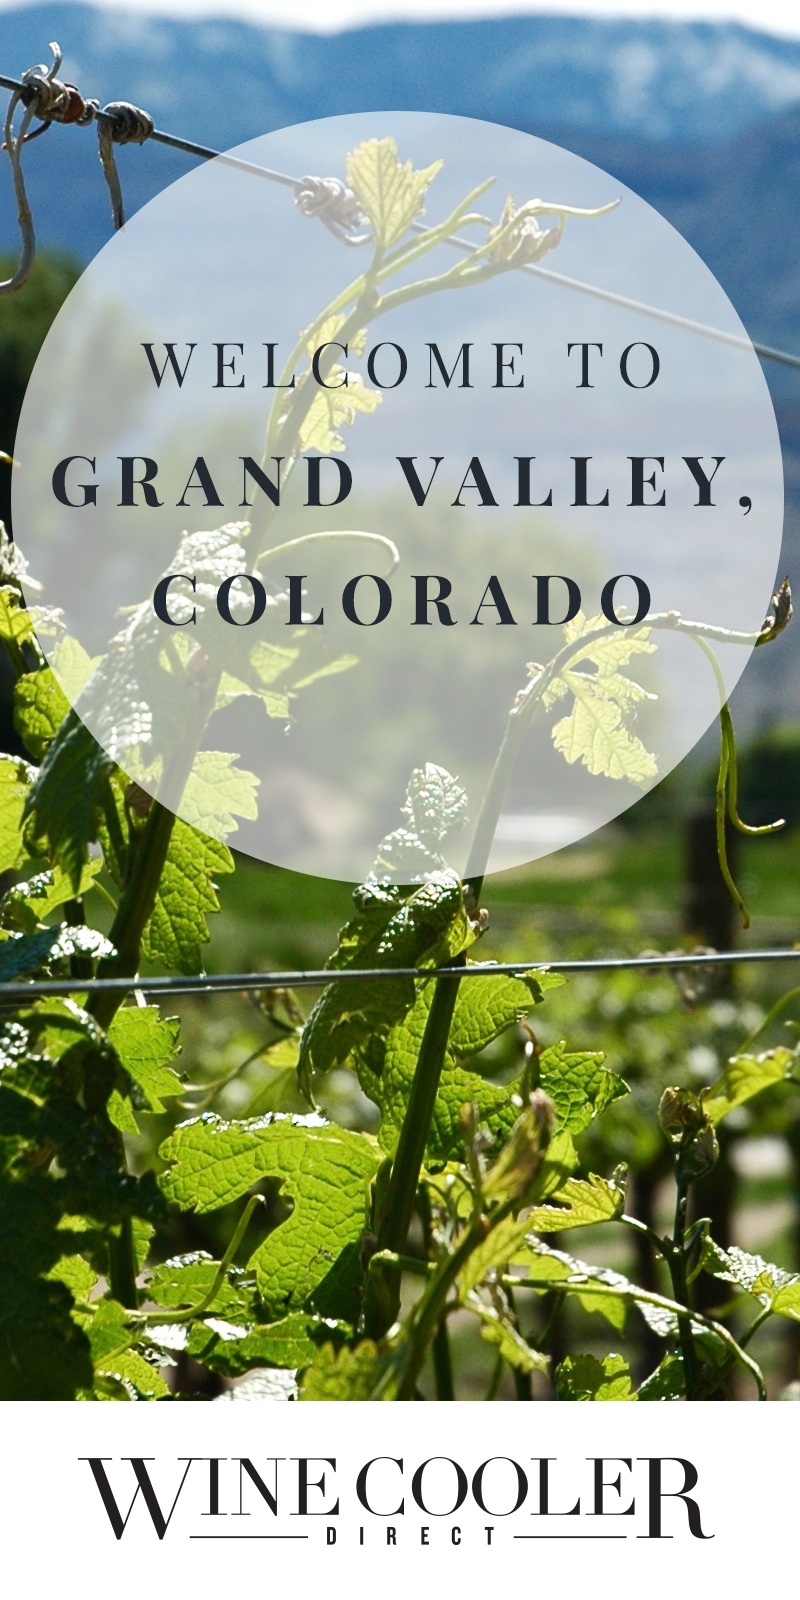 grand valley, colorado, wine